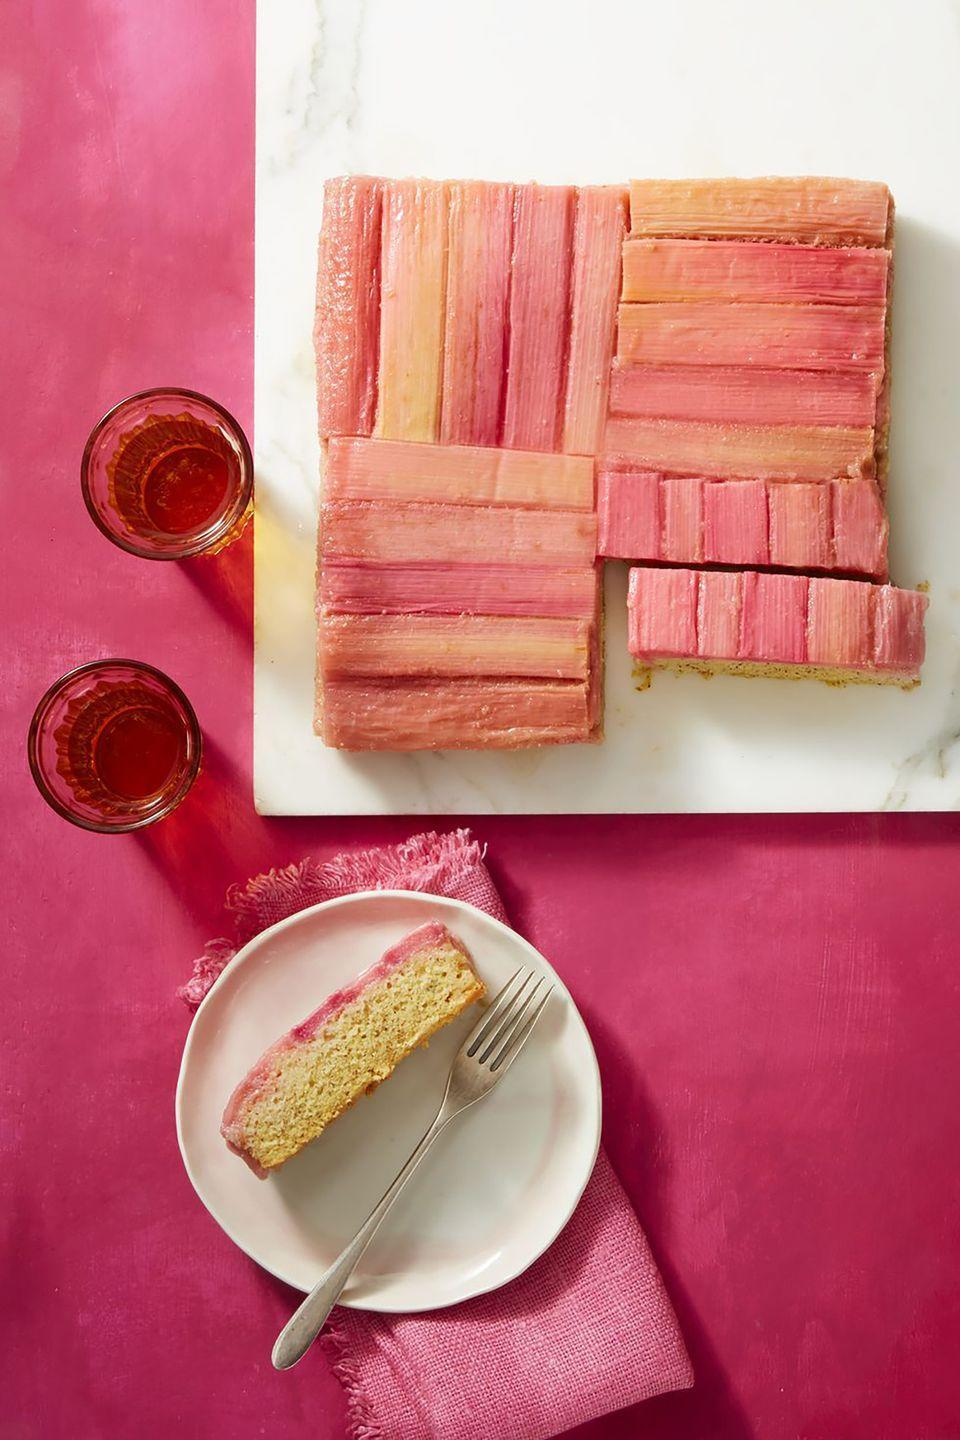 """<p>Made with rhubarb and orange juice, this pretty pink cake is the perfect dessert for spring. </p><p><a href=""""https://www.womansday.com/food-recipes/food-drinks/a19810598/rhubarb-and-almond-upside-down-cake-recipe/"""" rel=""""nofollow noopener"""" target=""""_blank"""" data-ylk=""""slk:Get the recipe for Rhubarb and Almond Upside-Down Cake."""" class=""""link rapid-noclick-resp""""><em>Get the recipe for Rhubarb and Almond Upside-Down Cake.</em></a> </p>"""